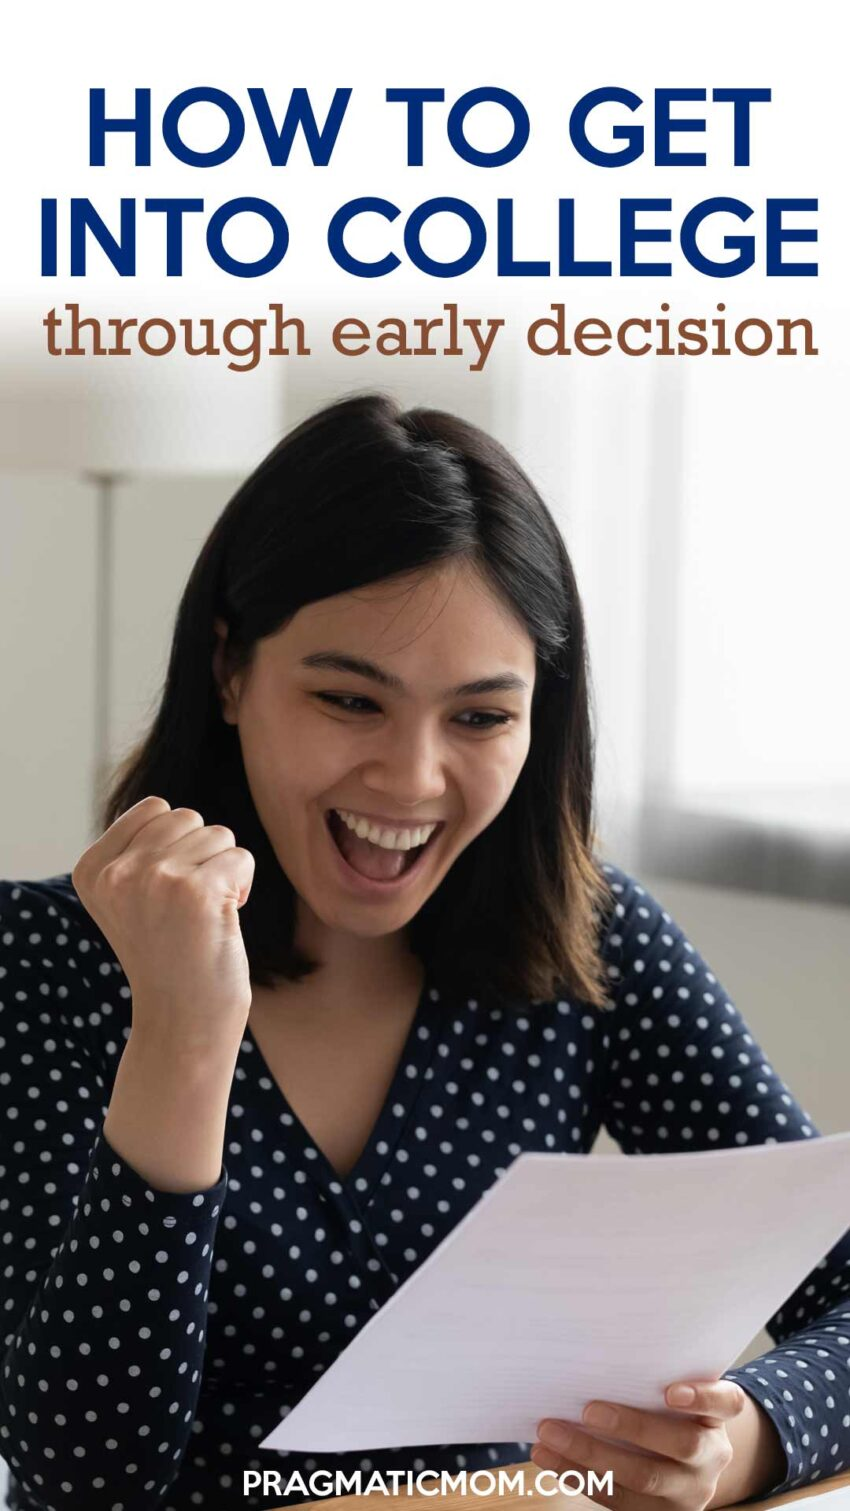 How to Get into College through Early Decision